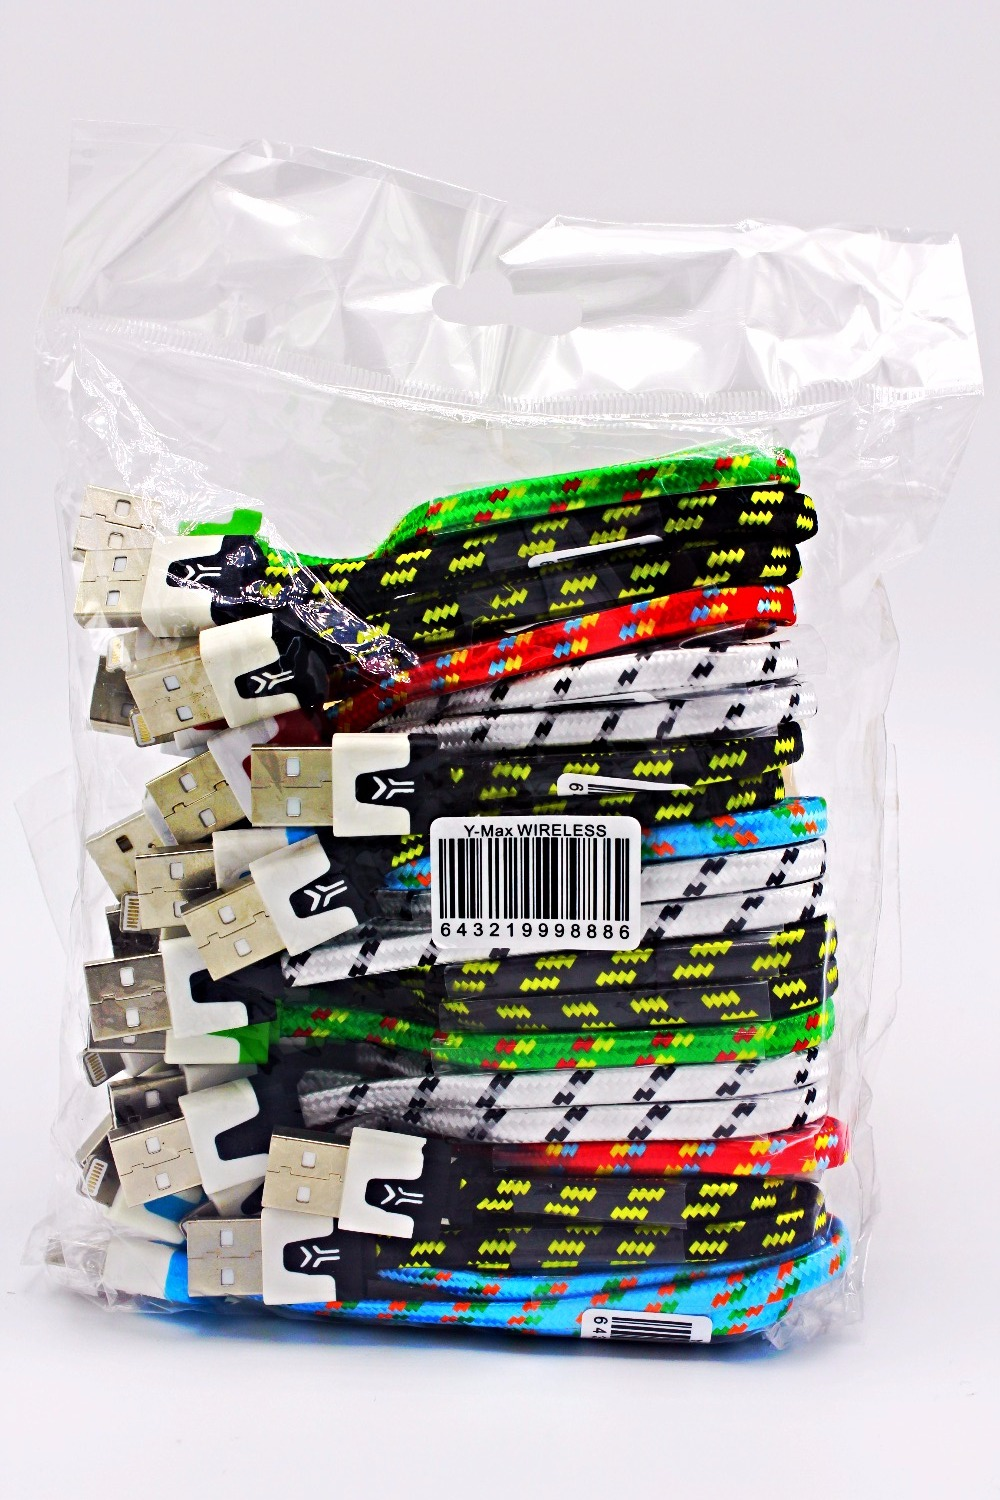 3 Ft. Braided Cable Refill Packaging